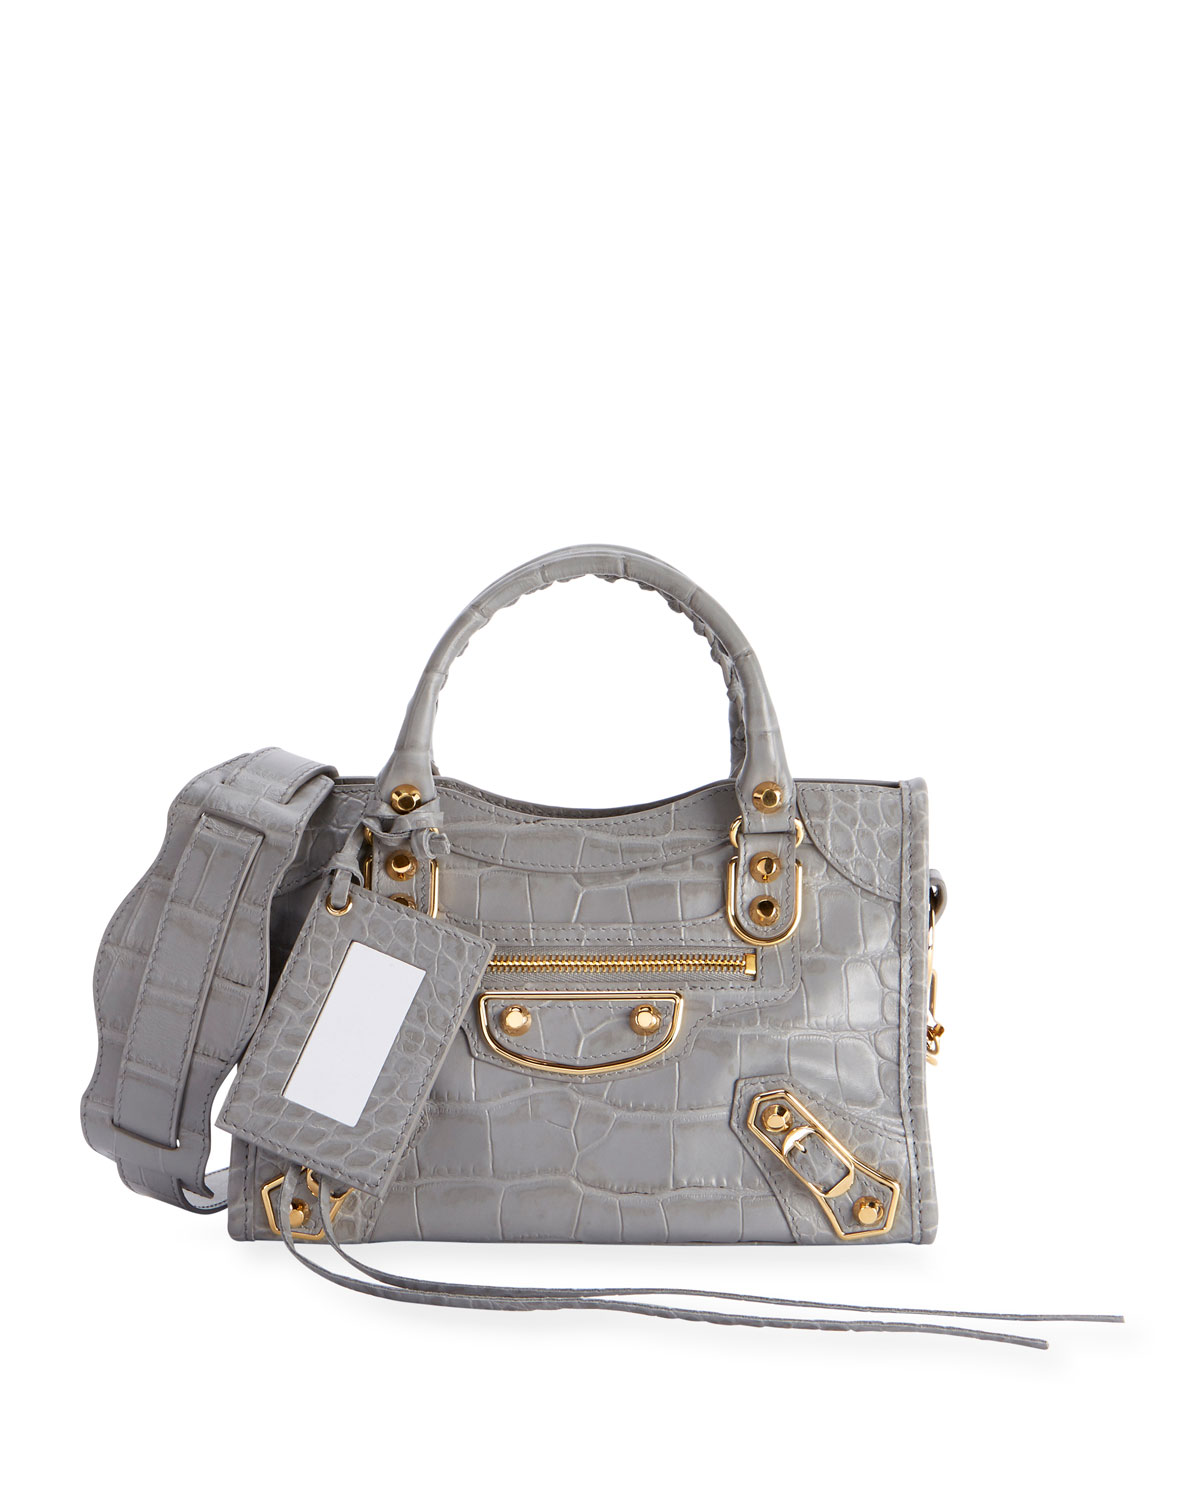 b2eabdea6b455 Balenciaga Metallic Edge Mini City AJ Croc-Embossed Bag